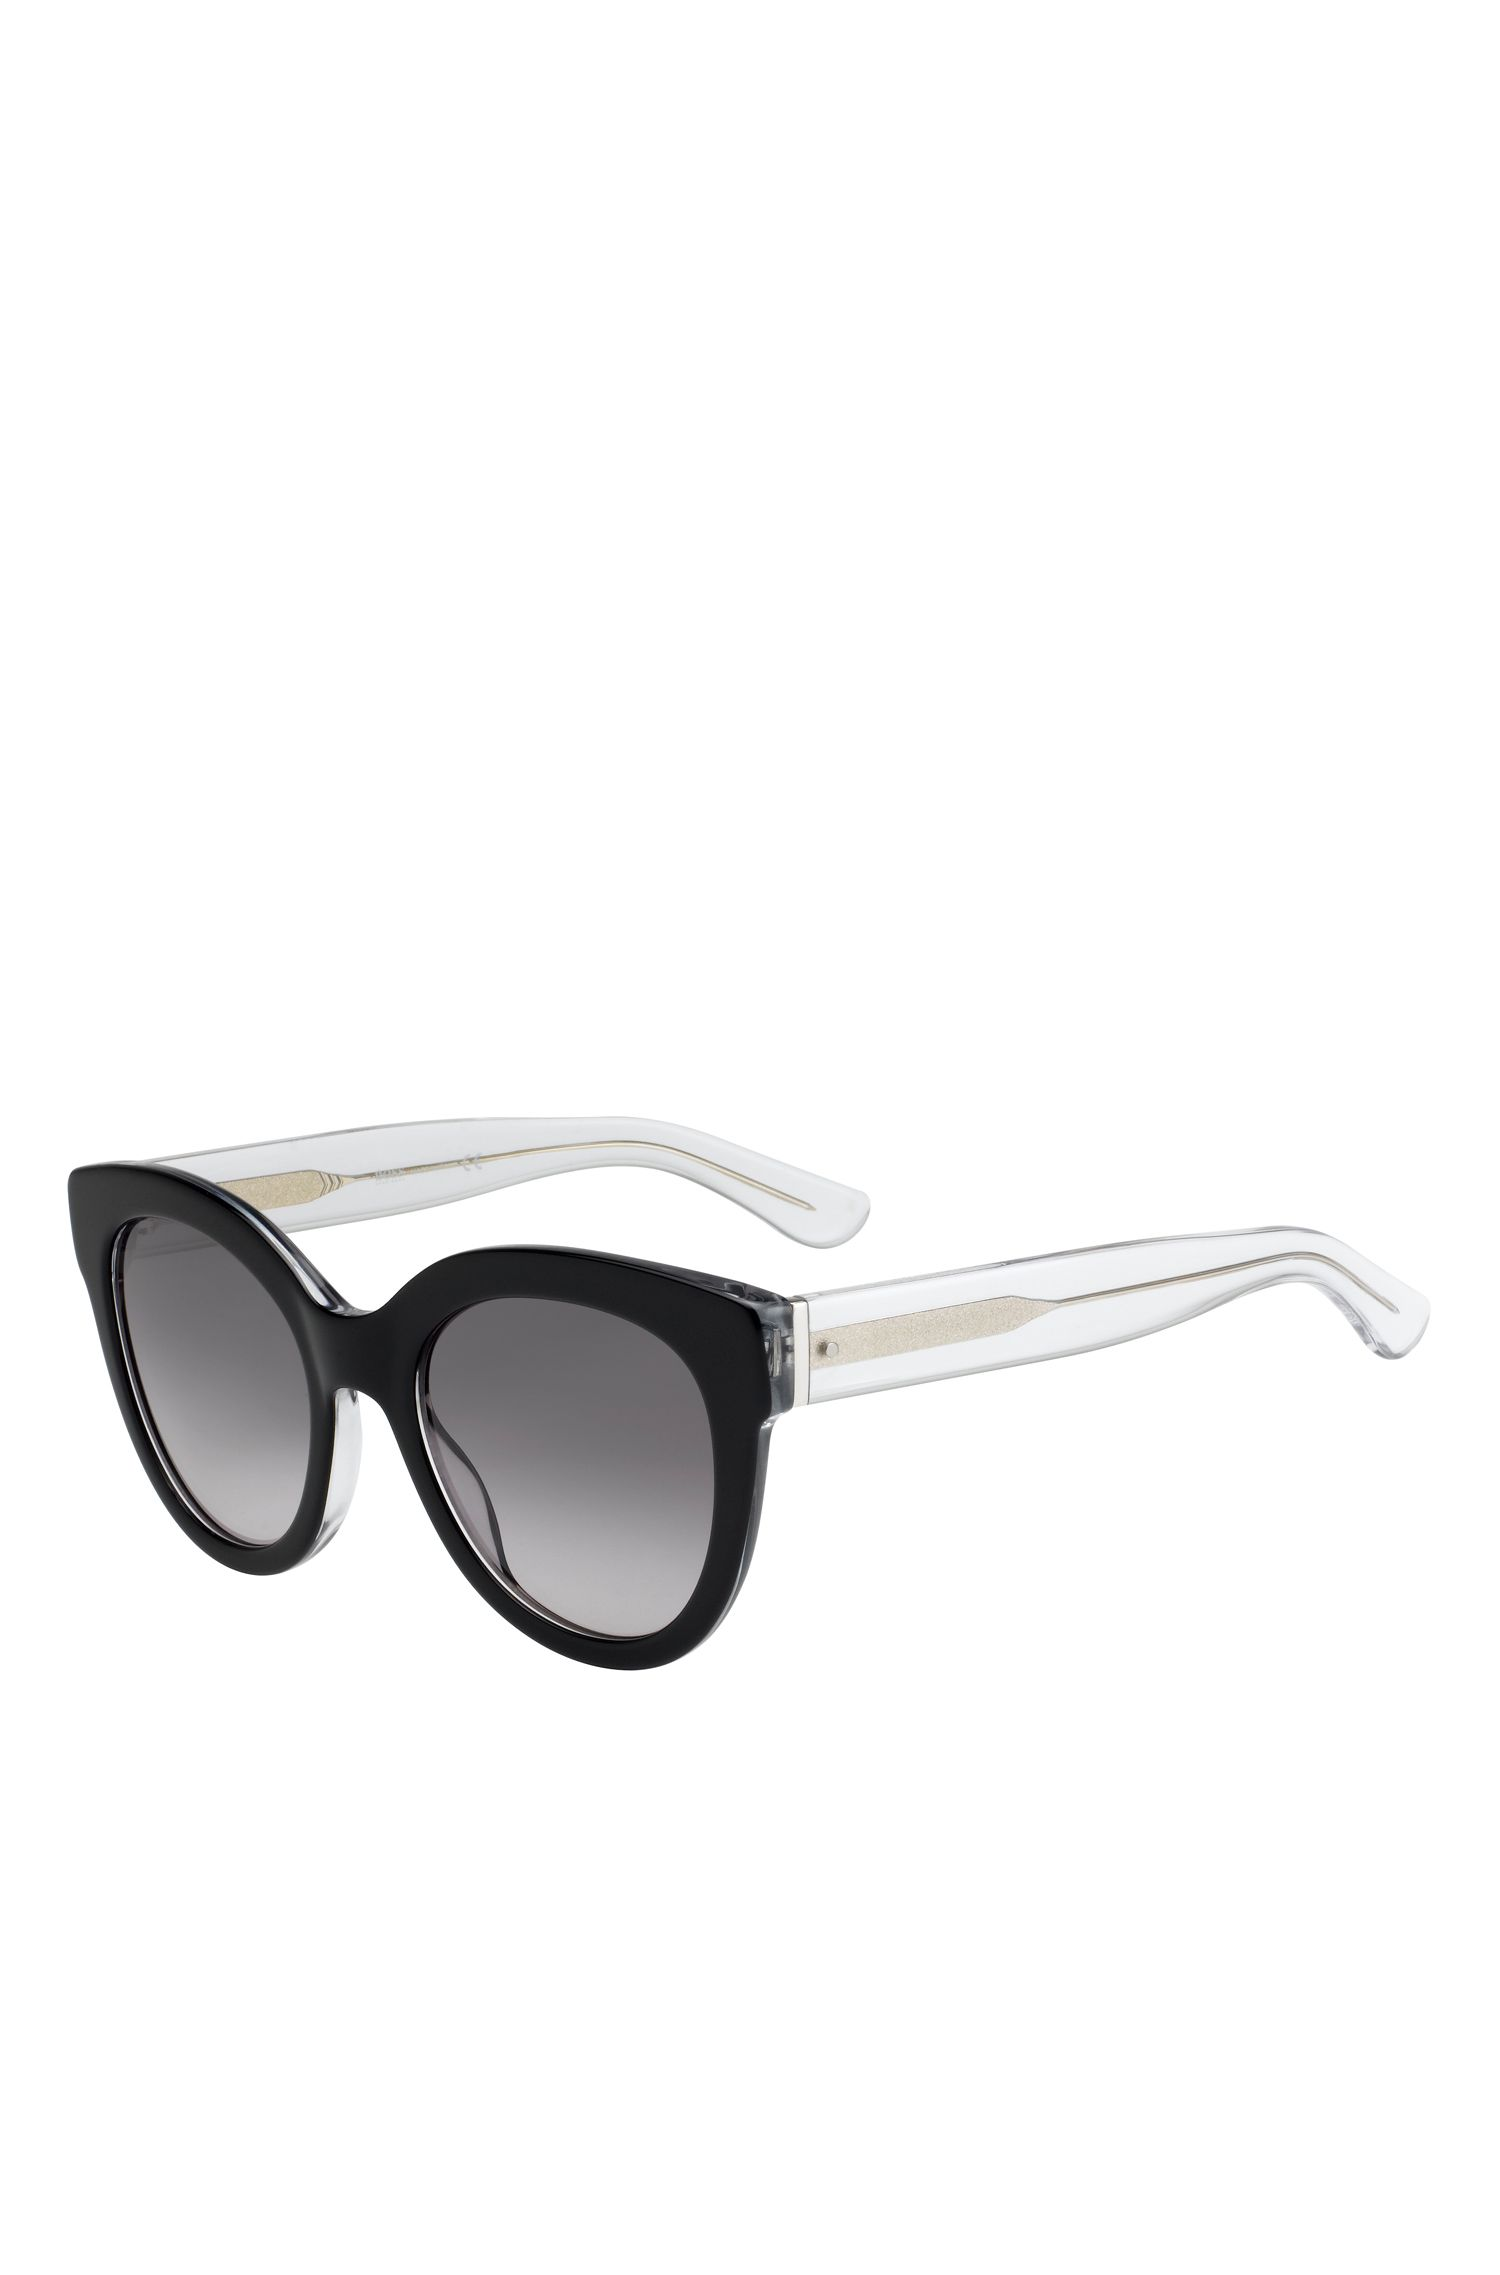 'BOSS 067S' | Cateye Gradient Lens Sunglasses